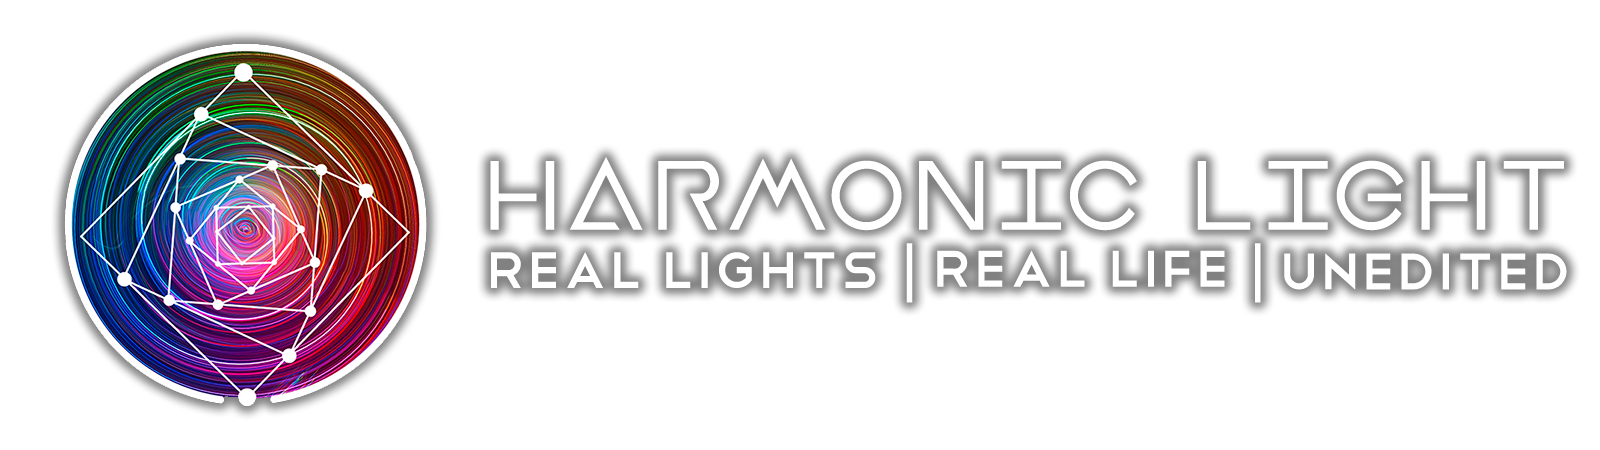 Harmonic Light Horizontal White text + color DROP SHADOW.png